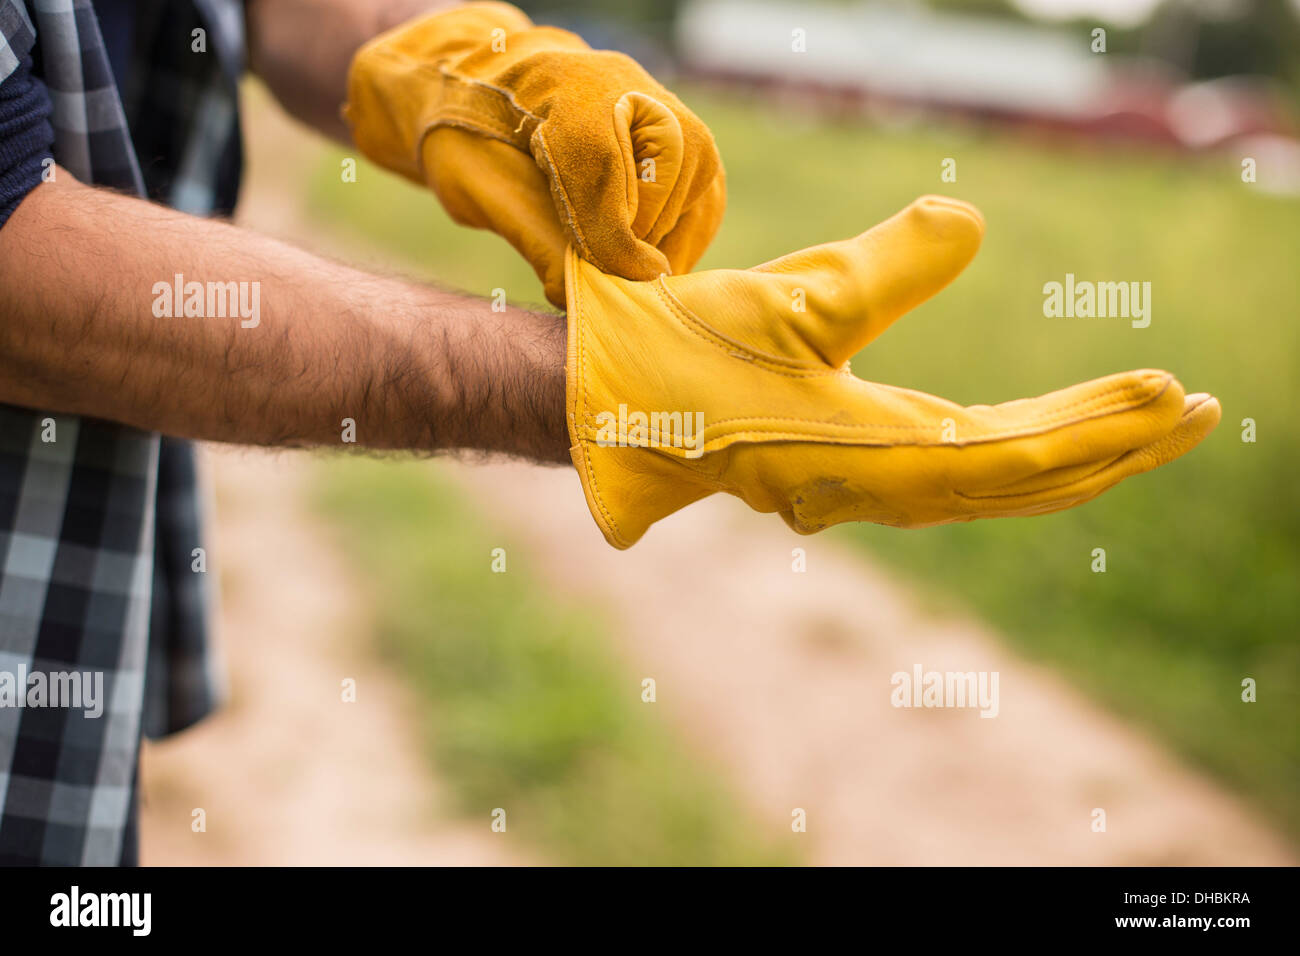 Working on an organic farm. A man putting thick yellow leather work gloves on. - Stock Image